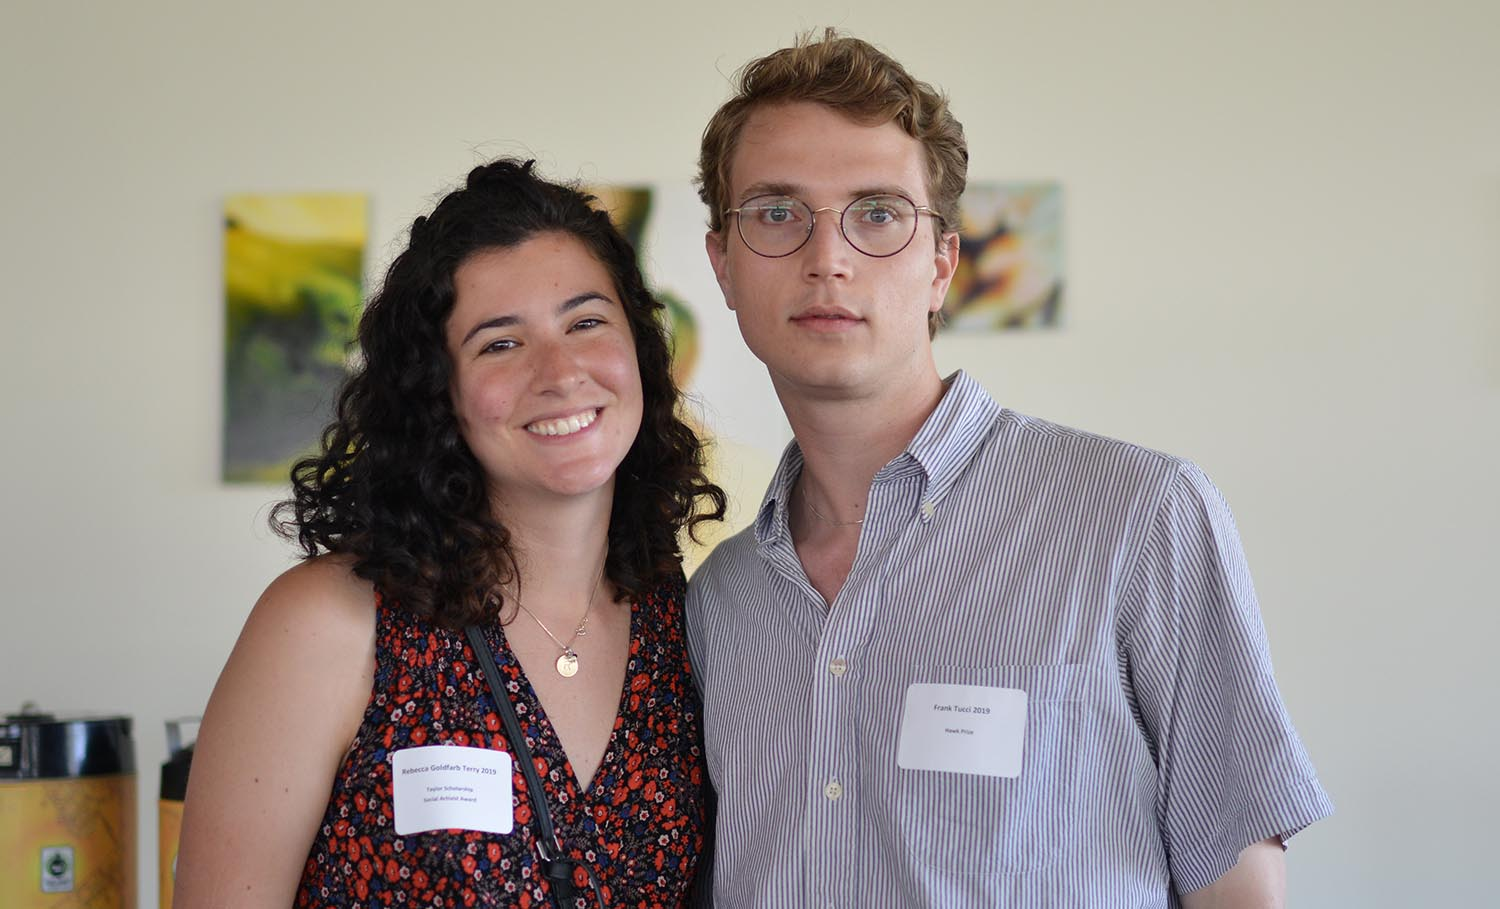 Rebecca Goldfarb Terry '19 received the Yalor Scholarship and the Social Activist Award. Frank Tucci received the Hawk Prize.